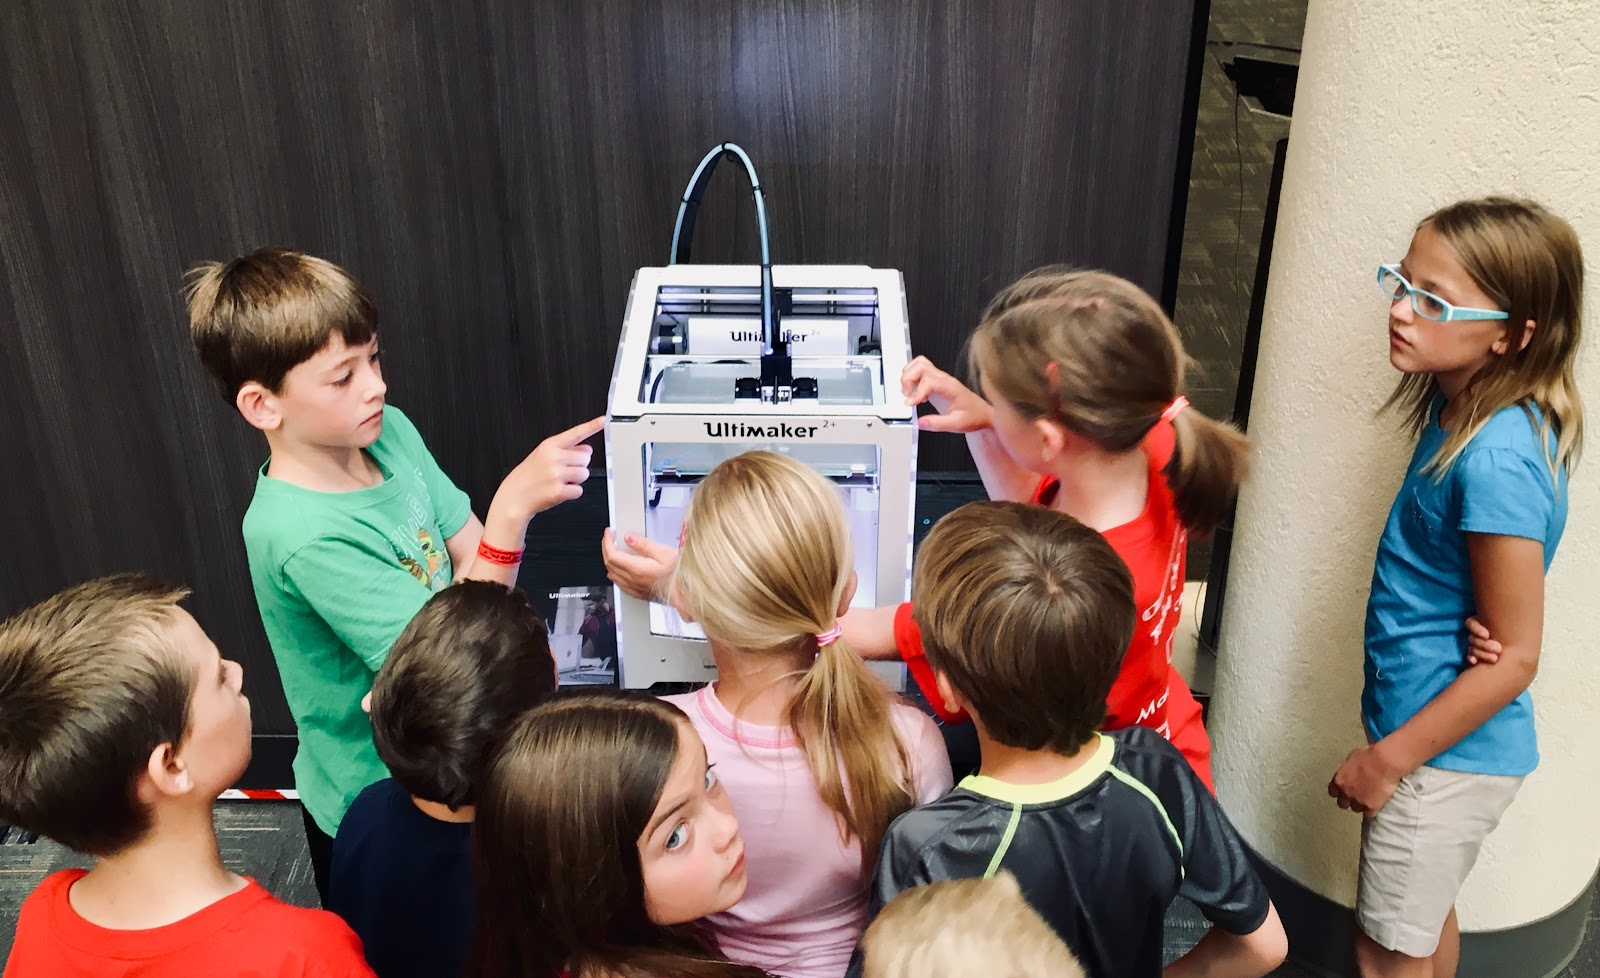 About ten elementary students are gathered around the 3-D printer in their classroom, observing it in action.